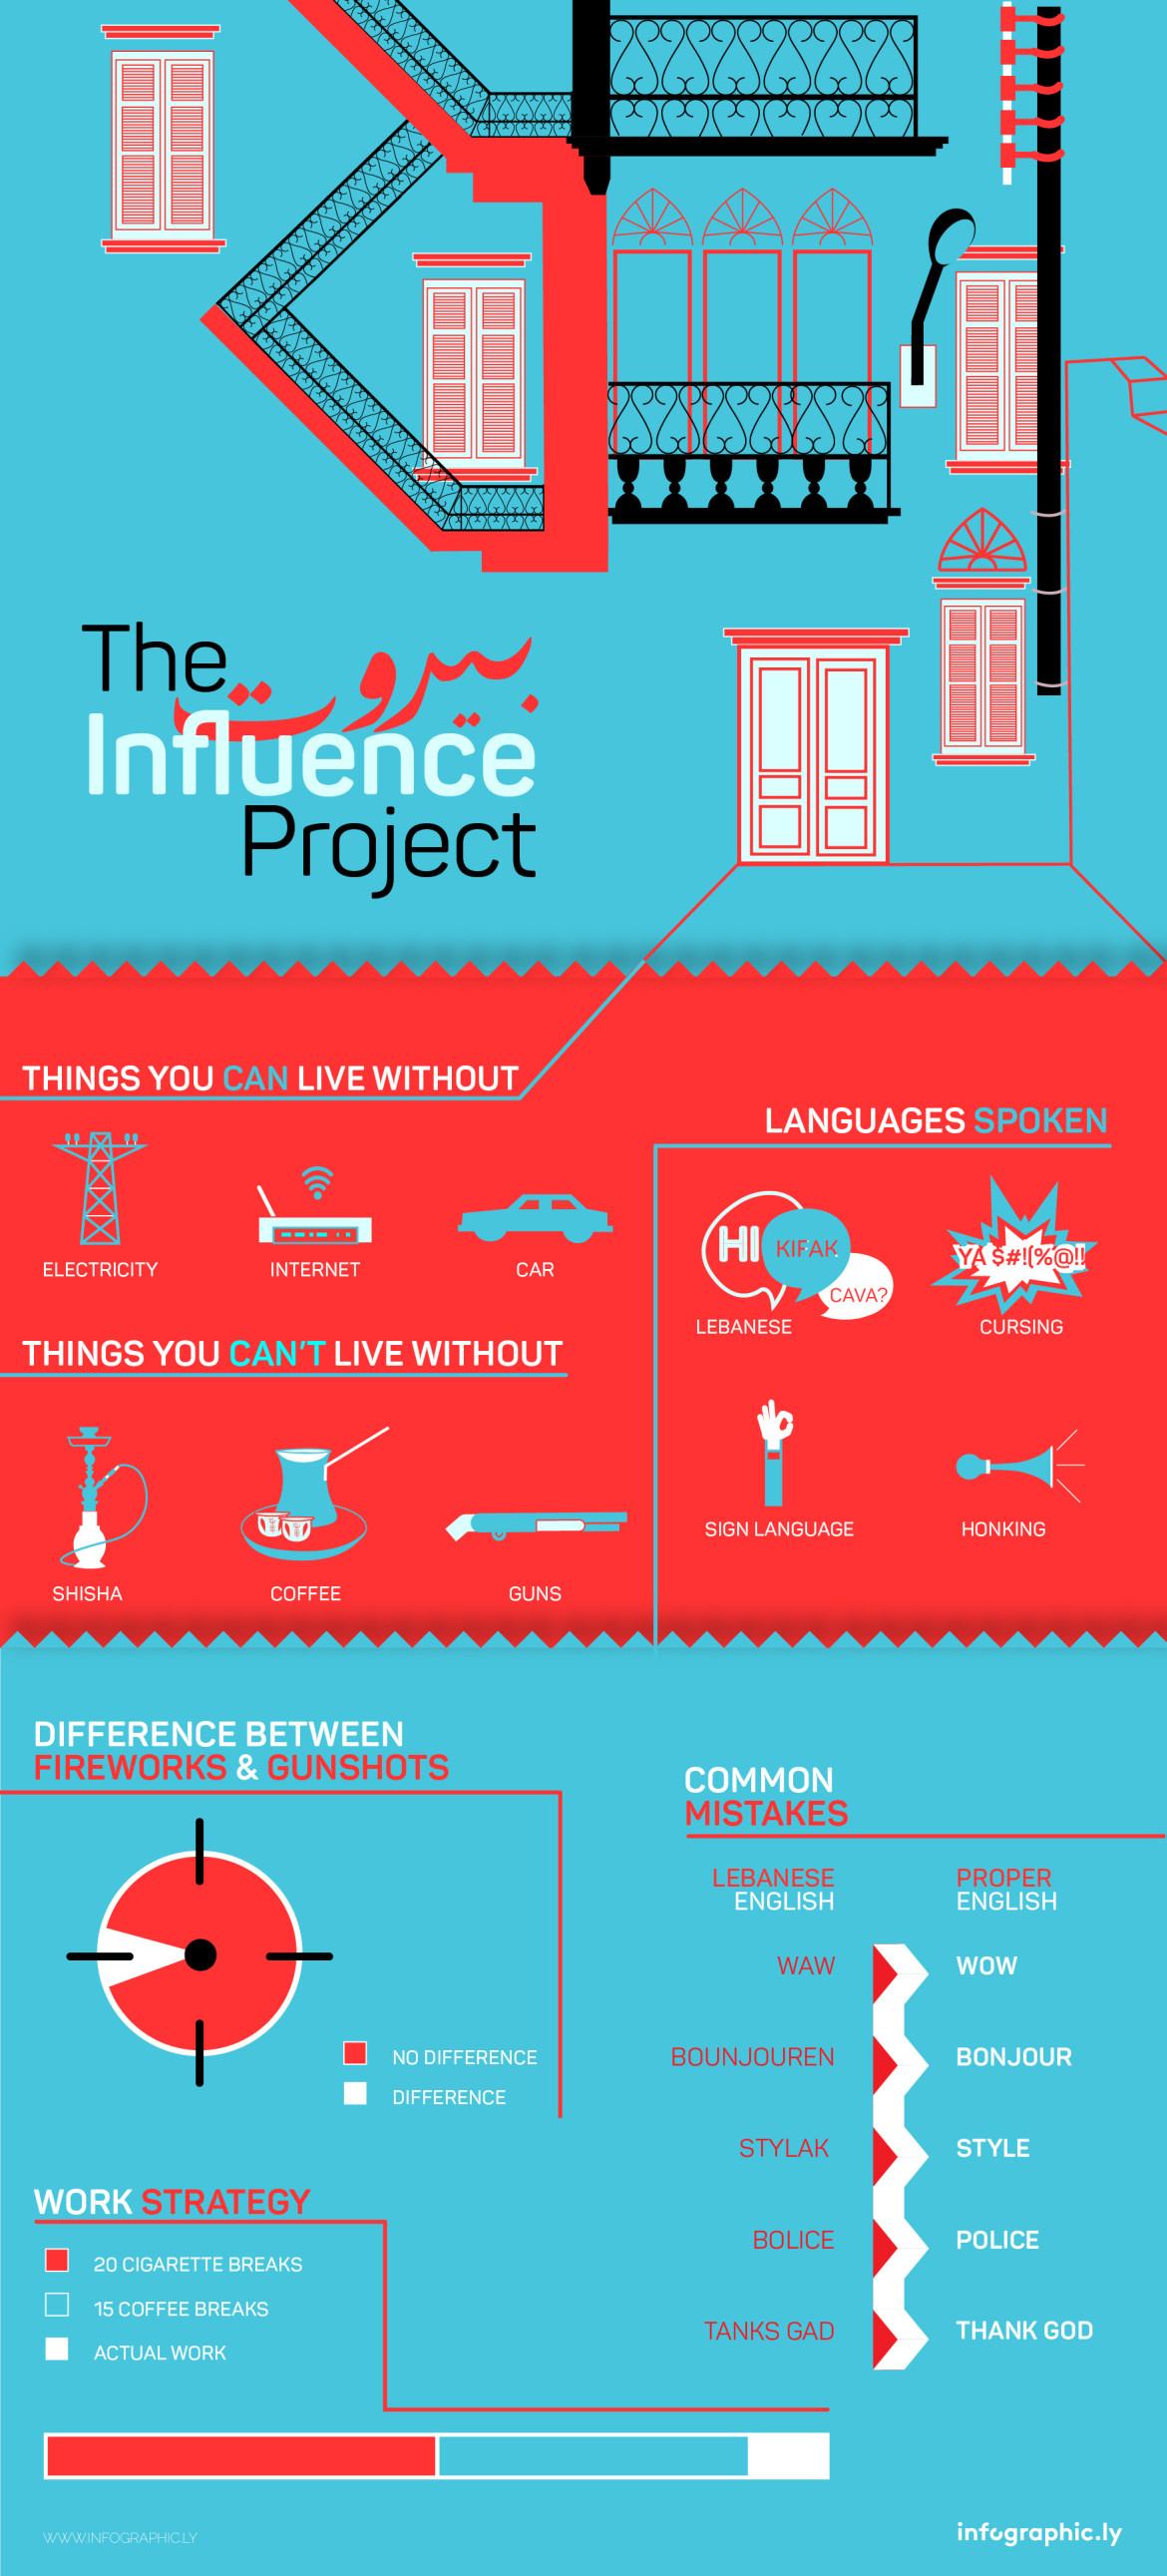 beirut-influence-project-01-1170x2582